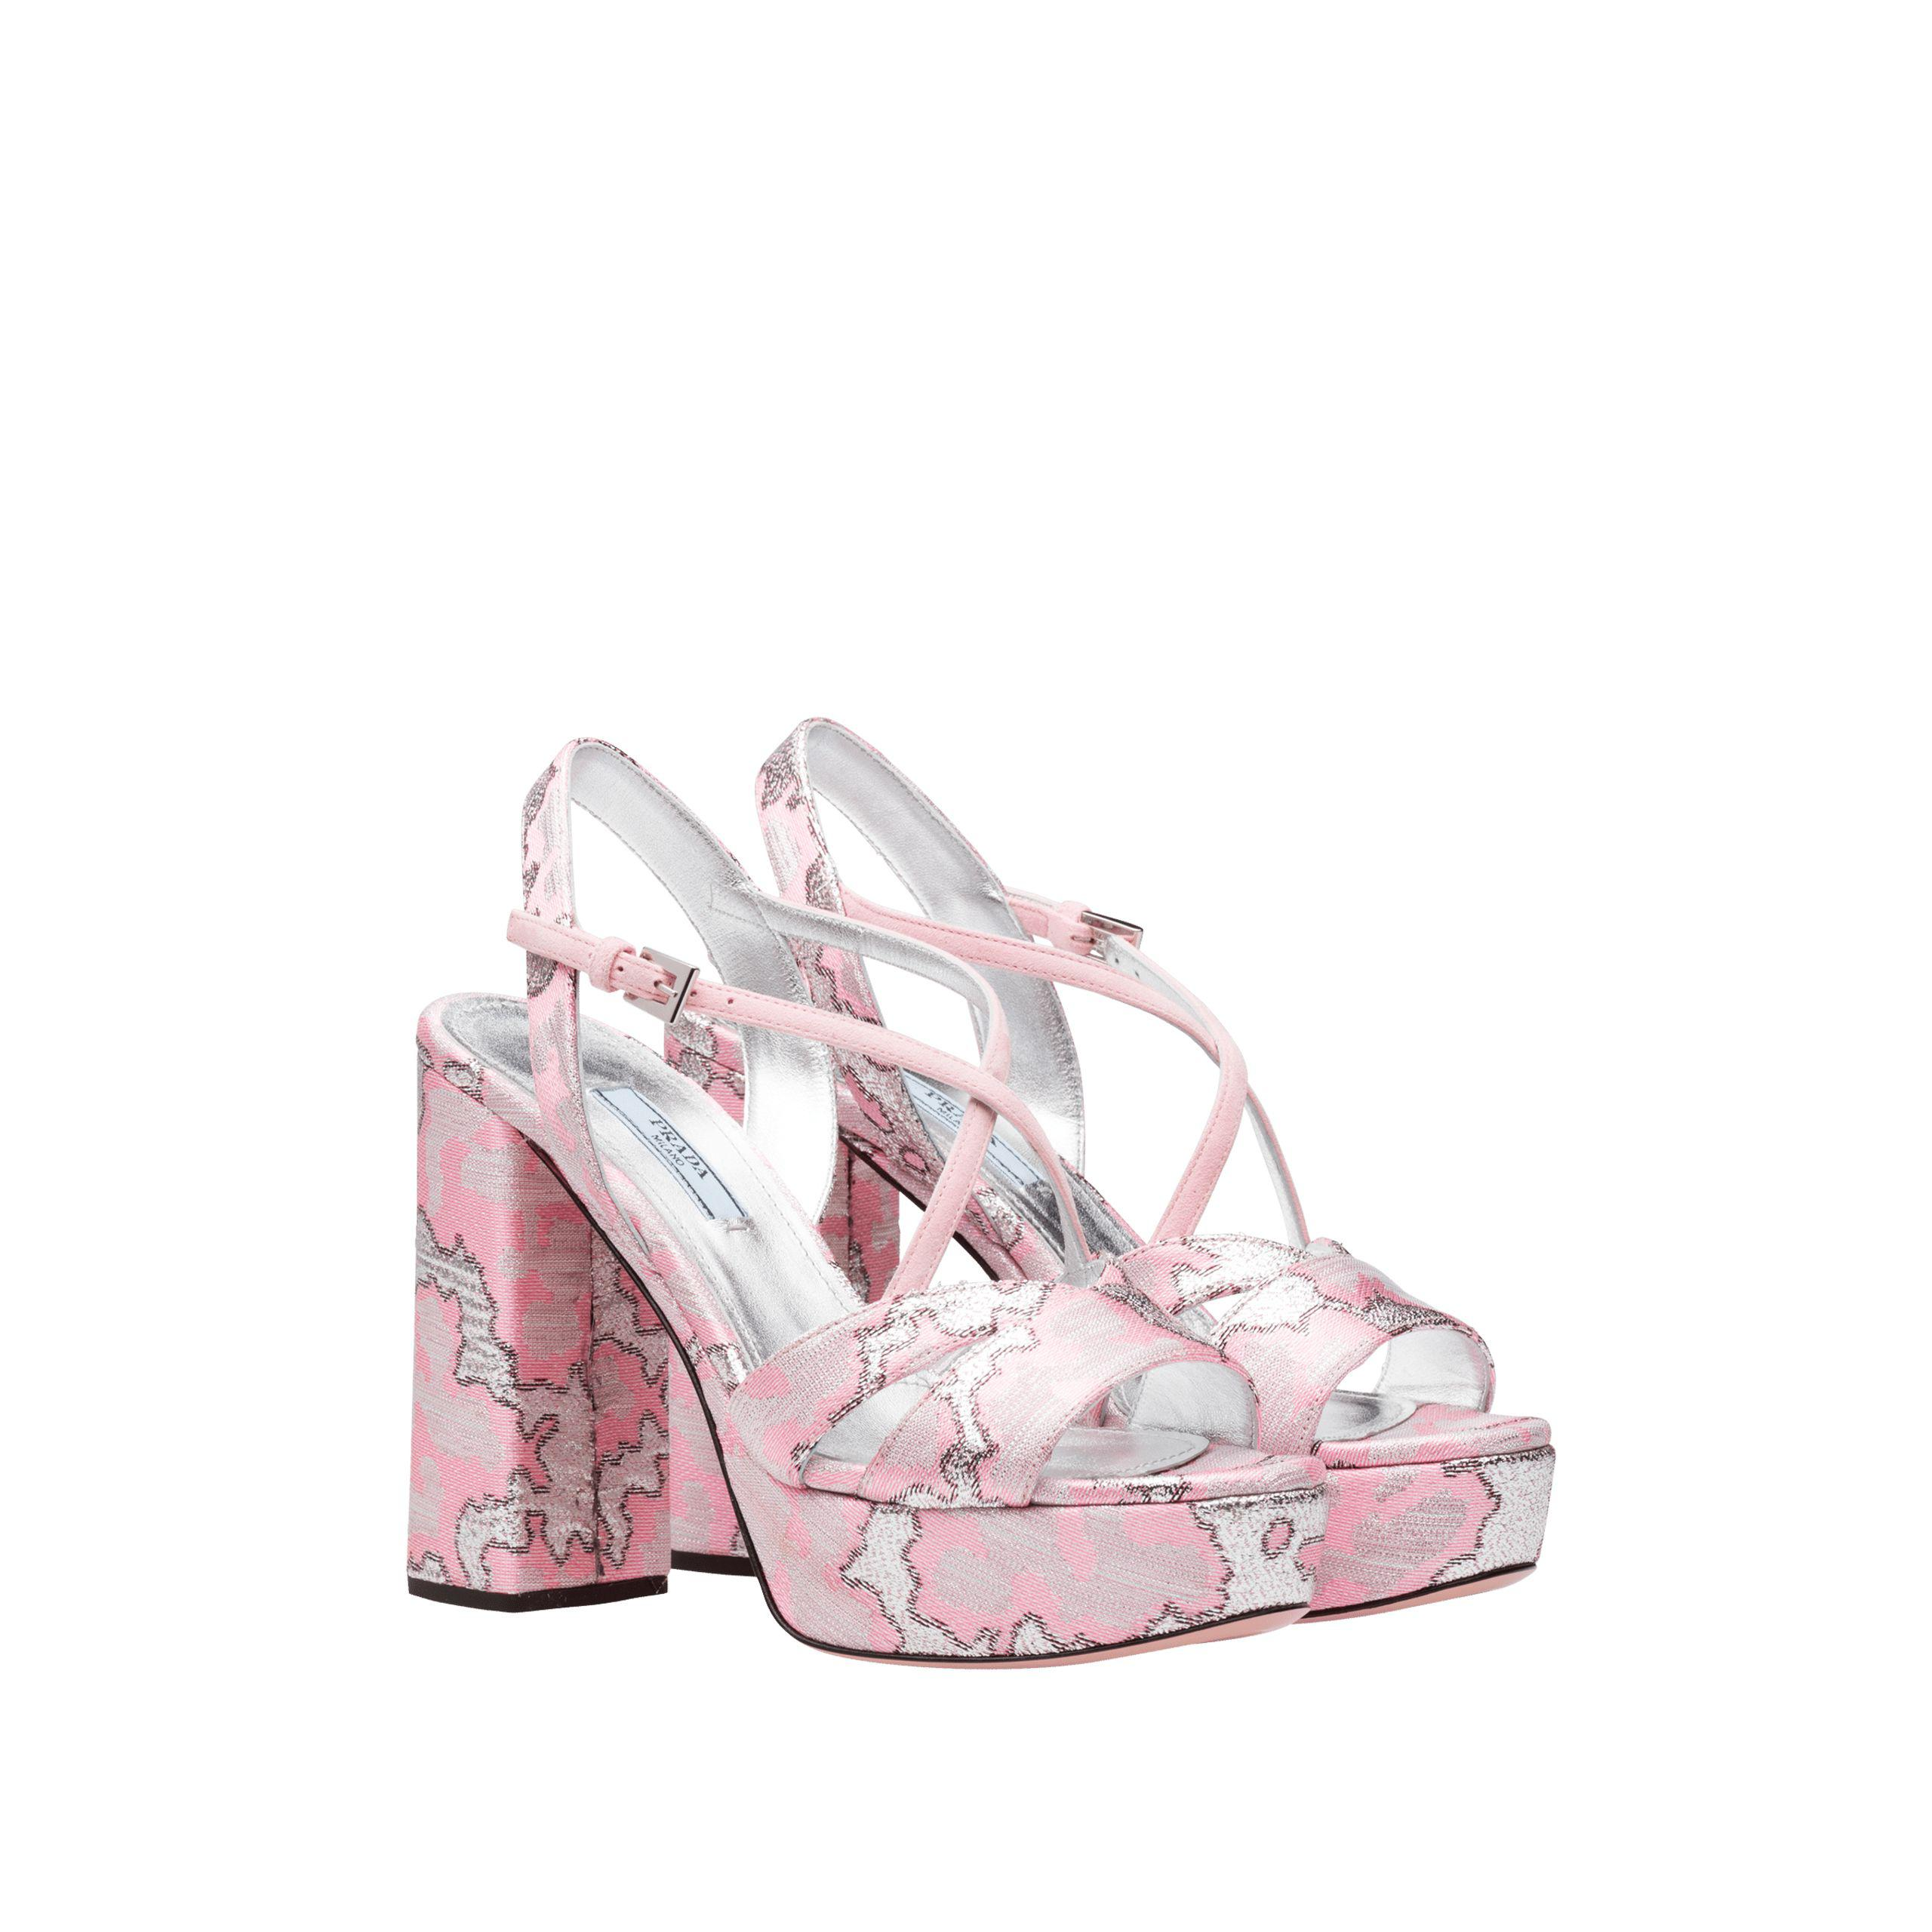 Prada Lurex Jacquard Sandal discount authentic cheapest price cheap online for sale official site new styles for nice cheap online YKK52